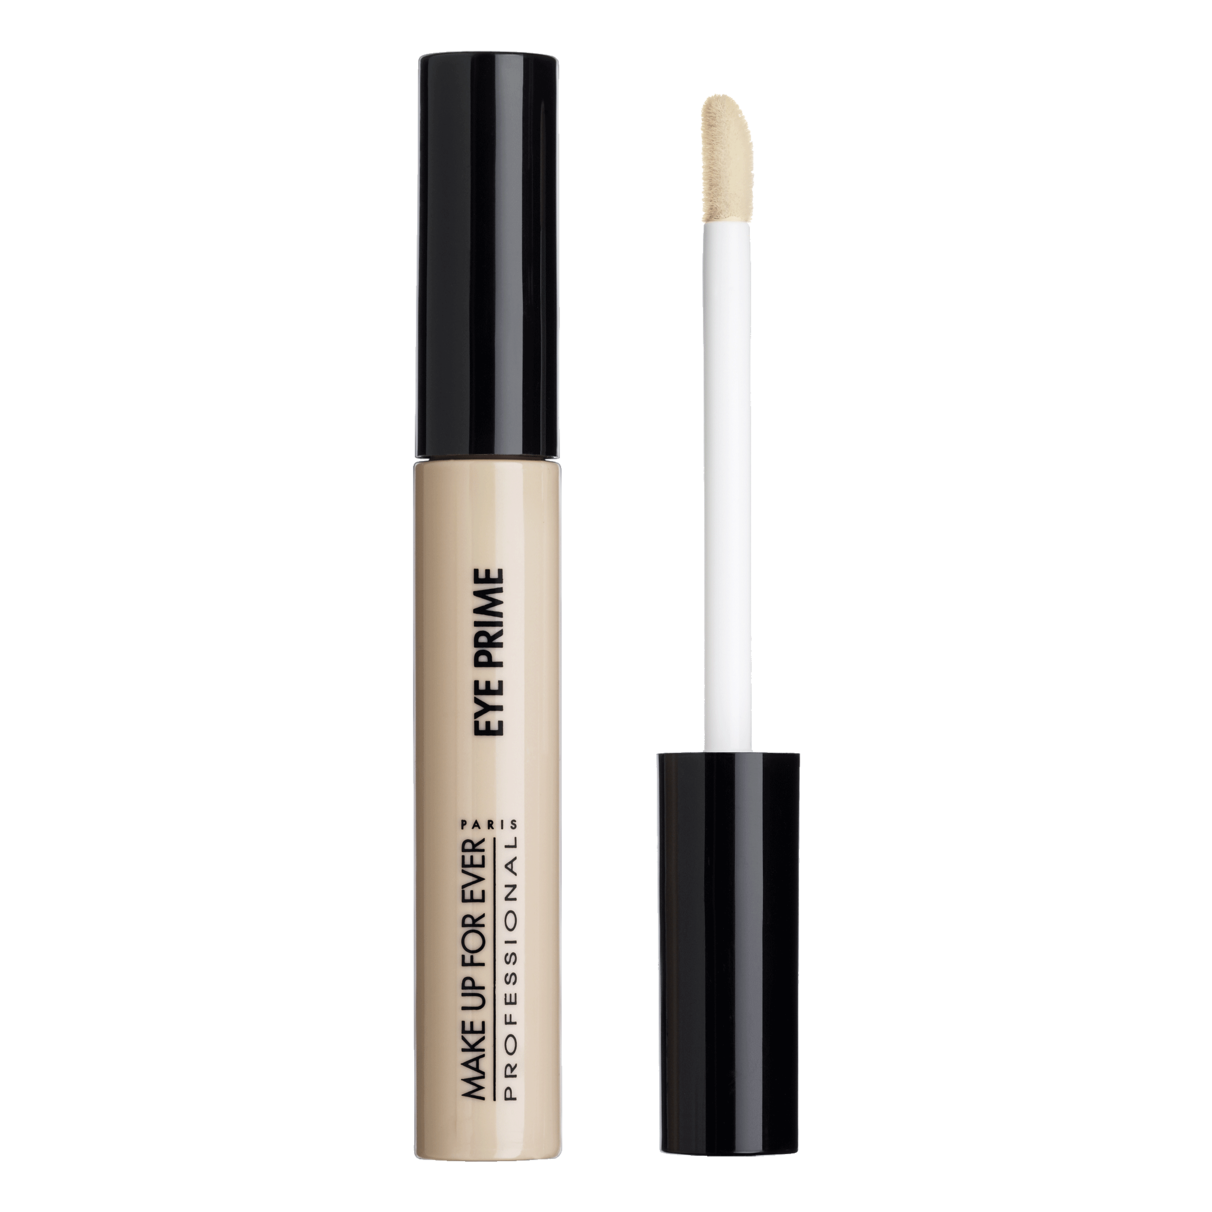 Make Up For Ever Eye Prime Long Wear Eyelid Primer Eye